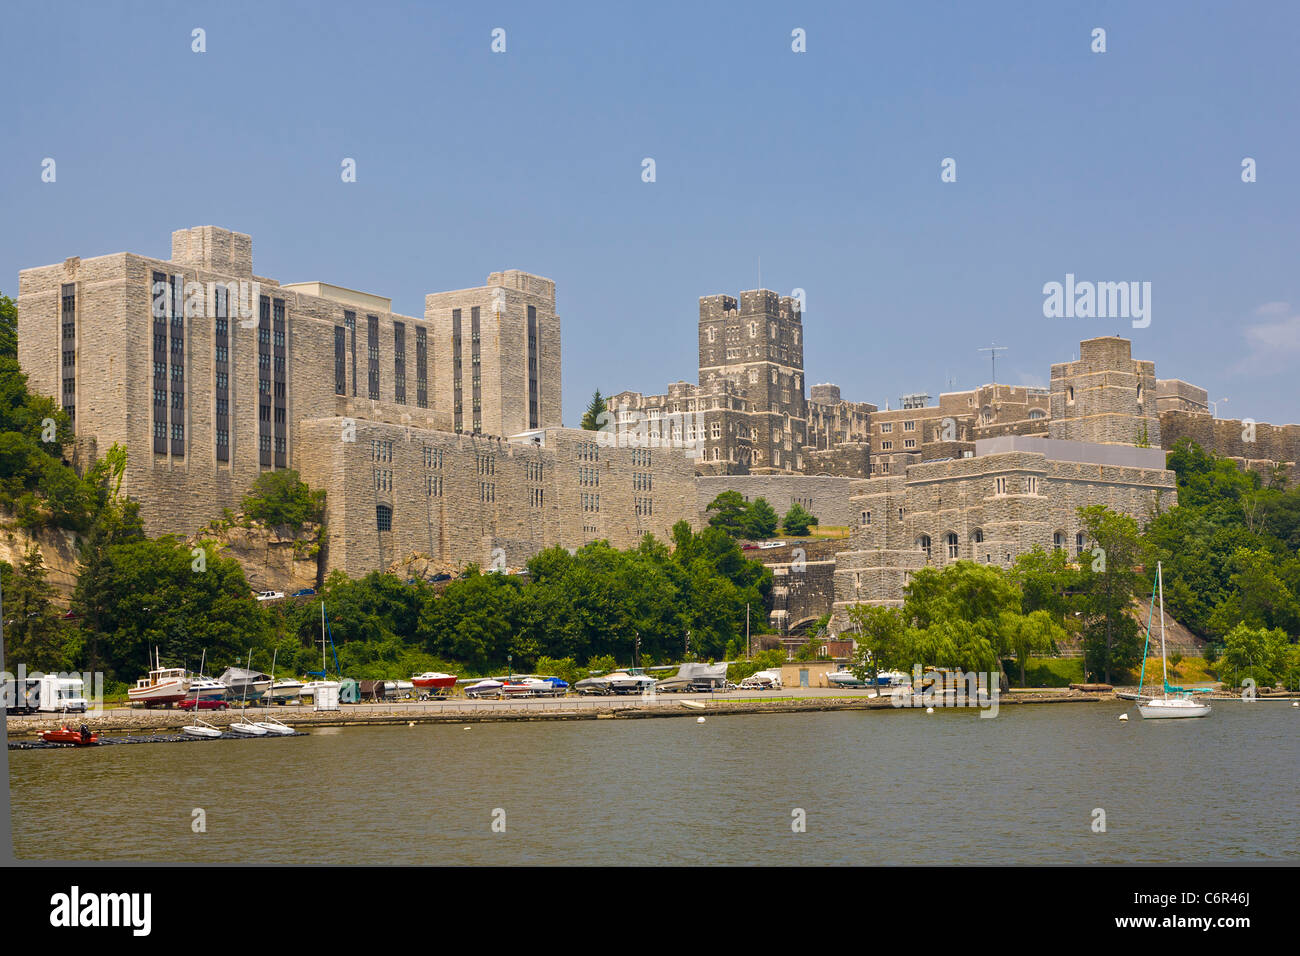 West Point Military Academy on the Hudson River in New York State Stock Photo